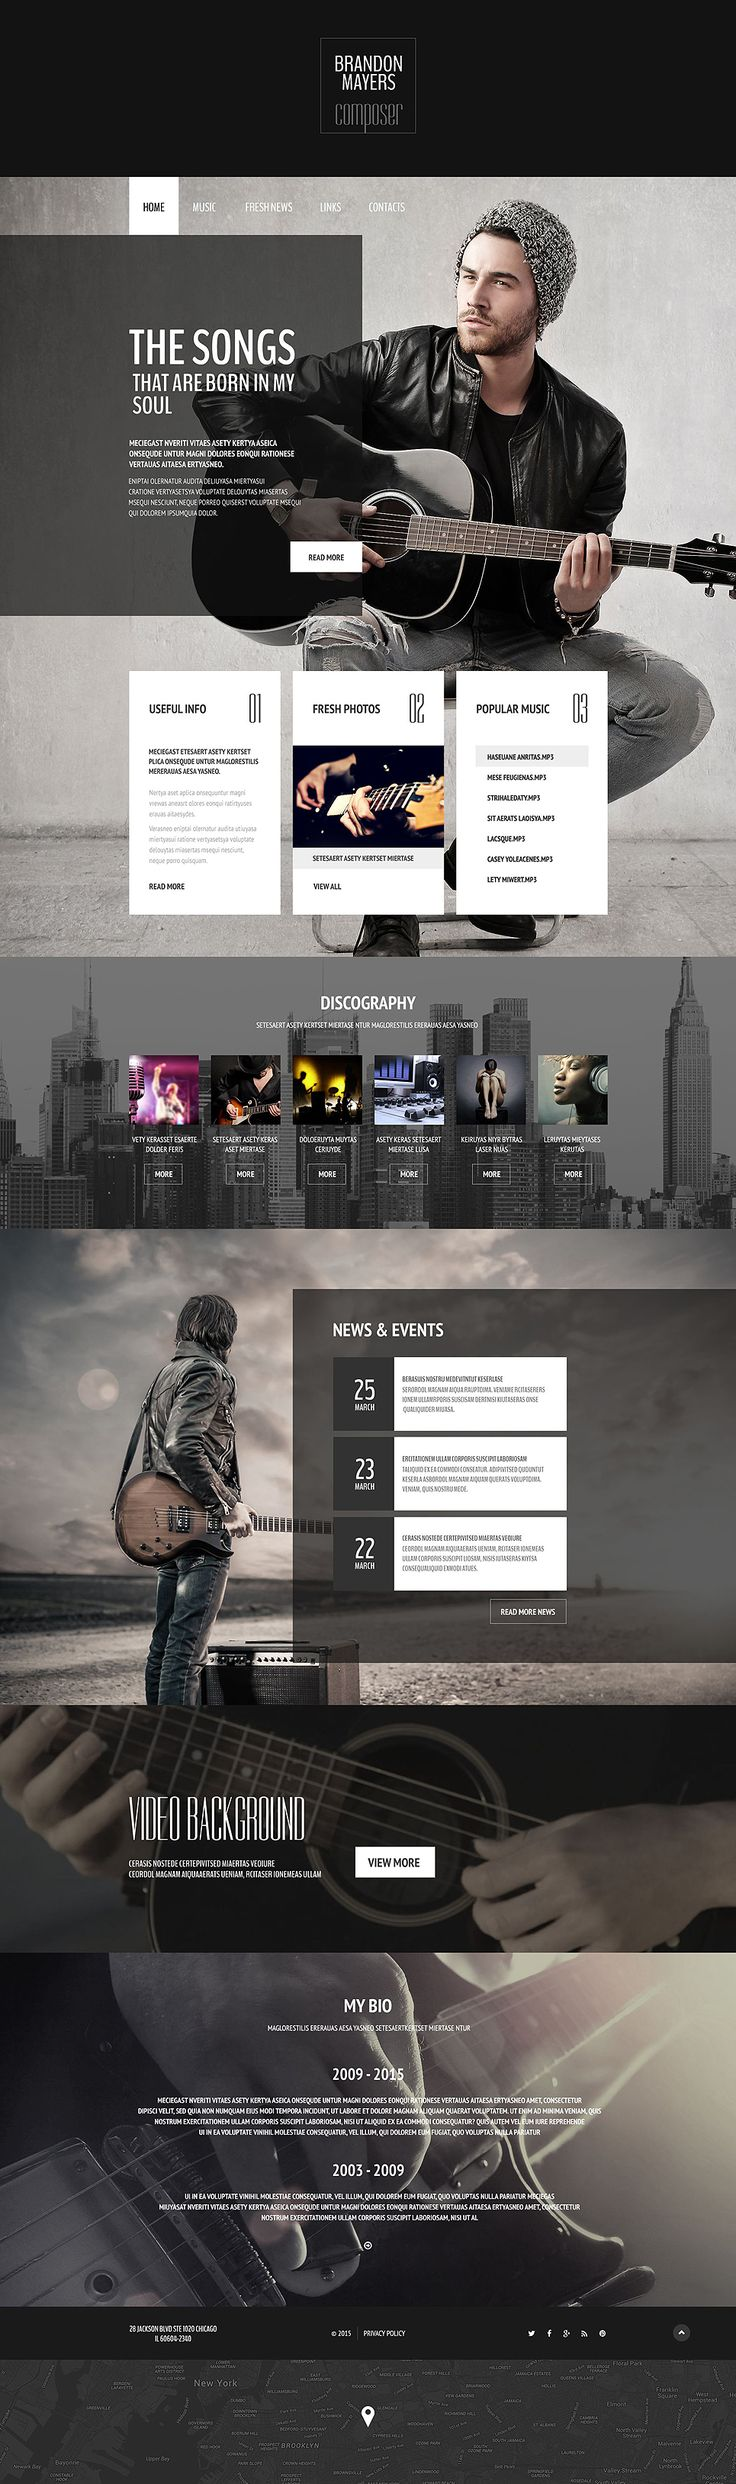 Composer's #Portfolio #Website #Template HTML5 http://www.templatemonster.com/website-templates/54996.html?utm_source=pinterest&utm_medium=timeline&utm_campaign=54996ws